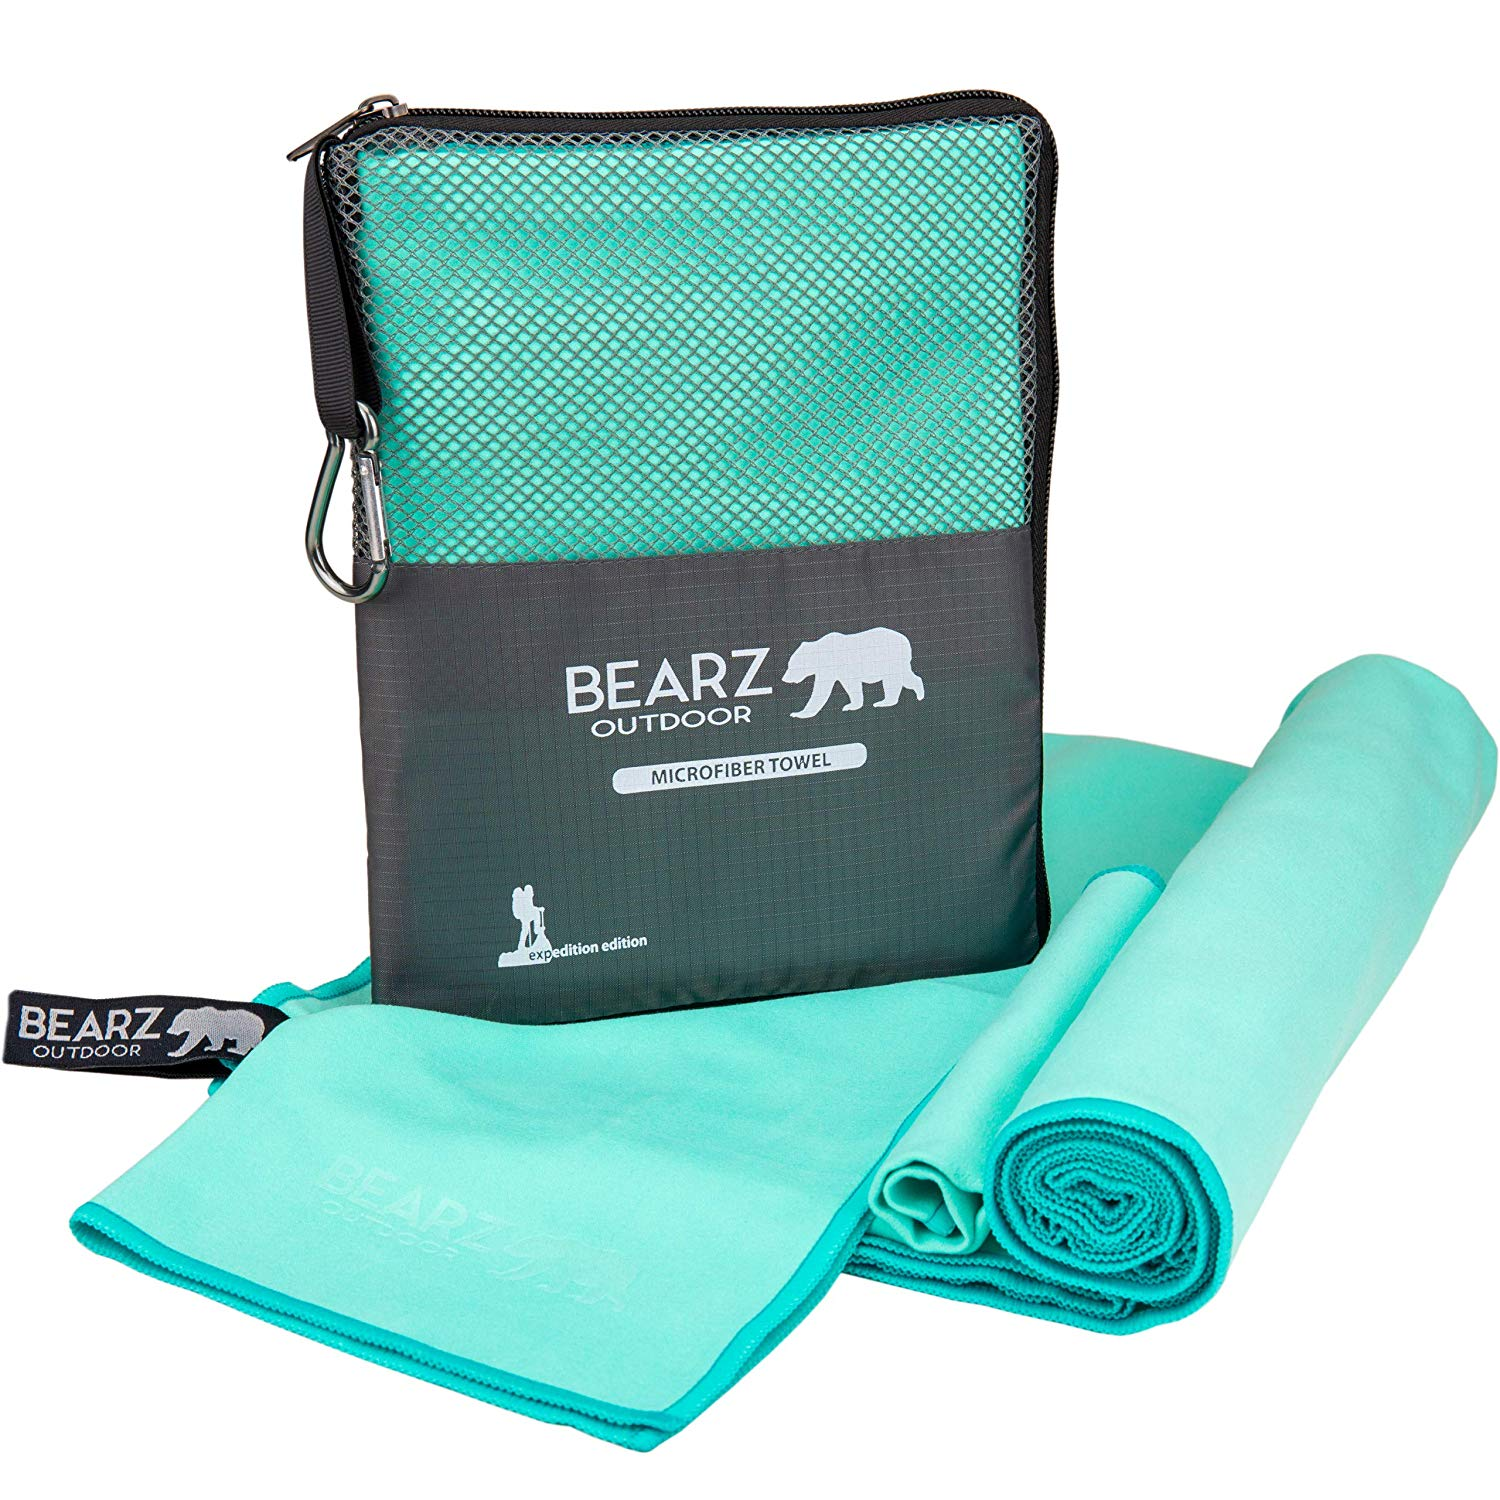 7. BEARZ Outdoor Microfiber Towel